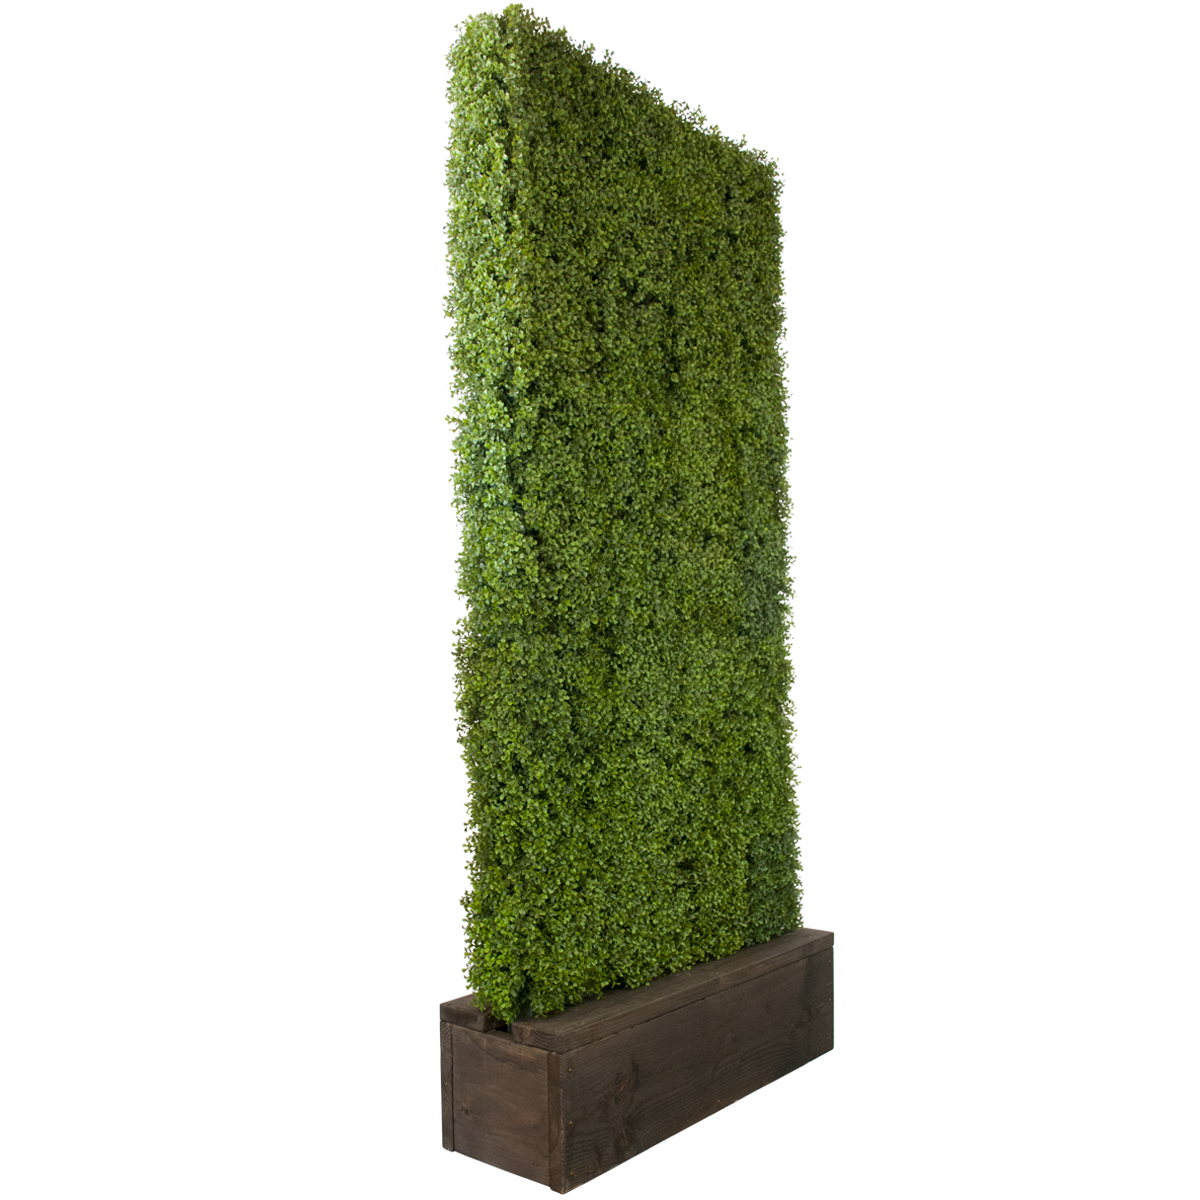 clip royalty free Boxwood hedge shrubs artificial. Vector bushes rectangle